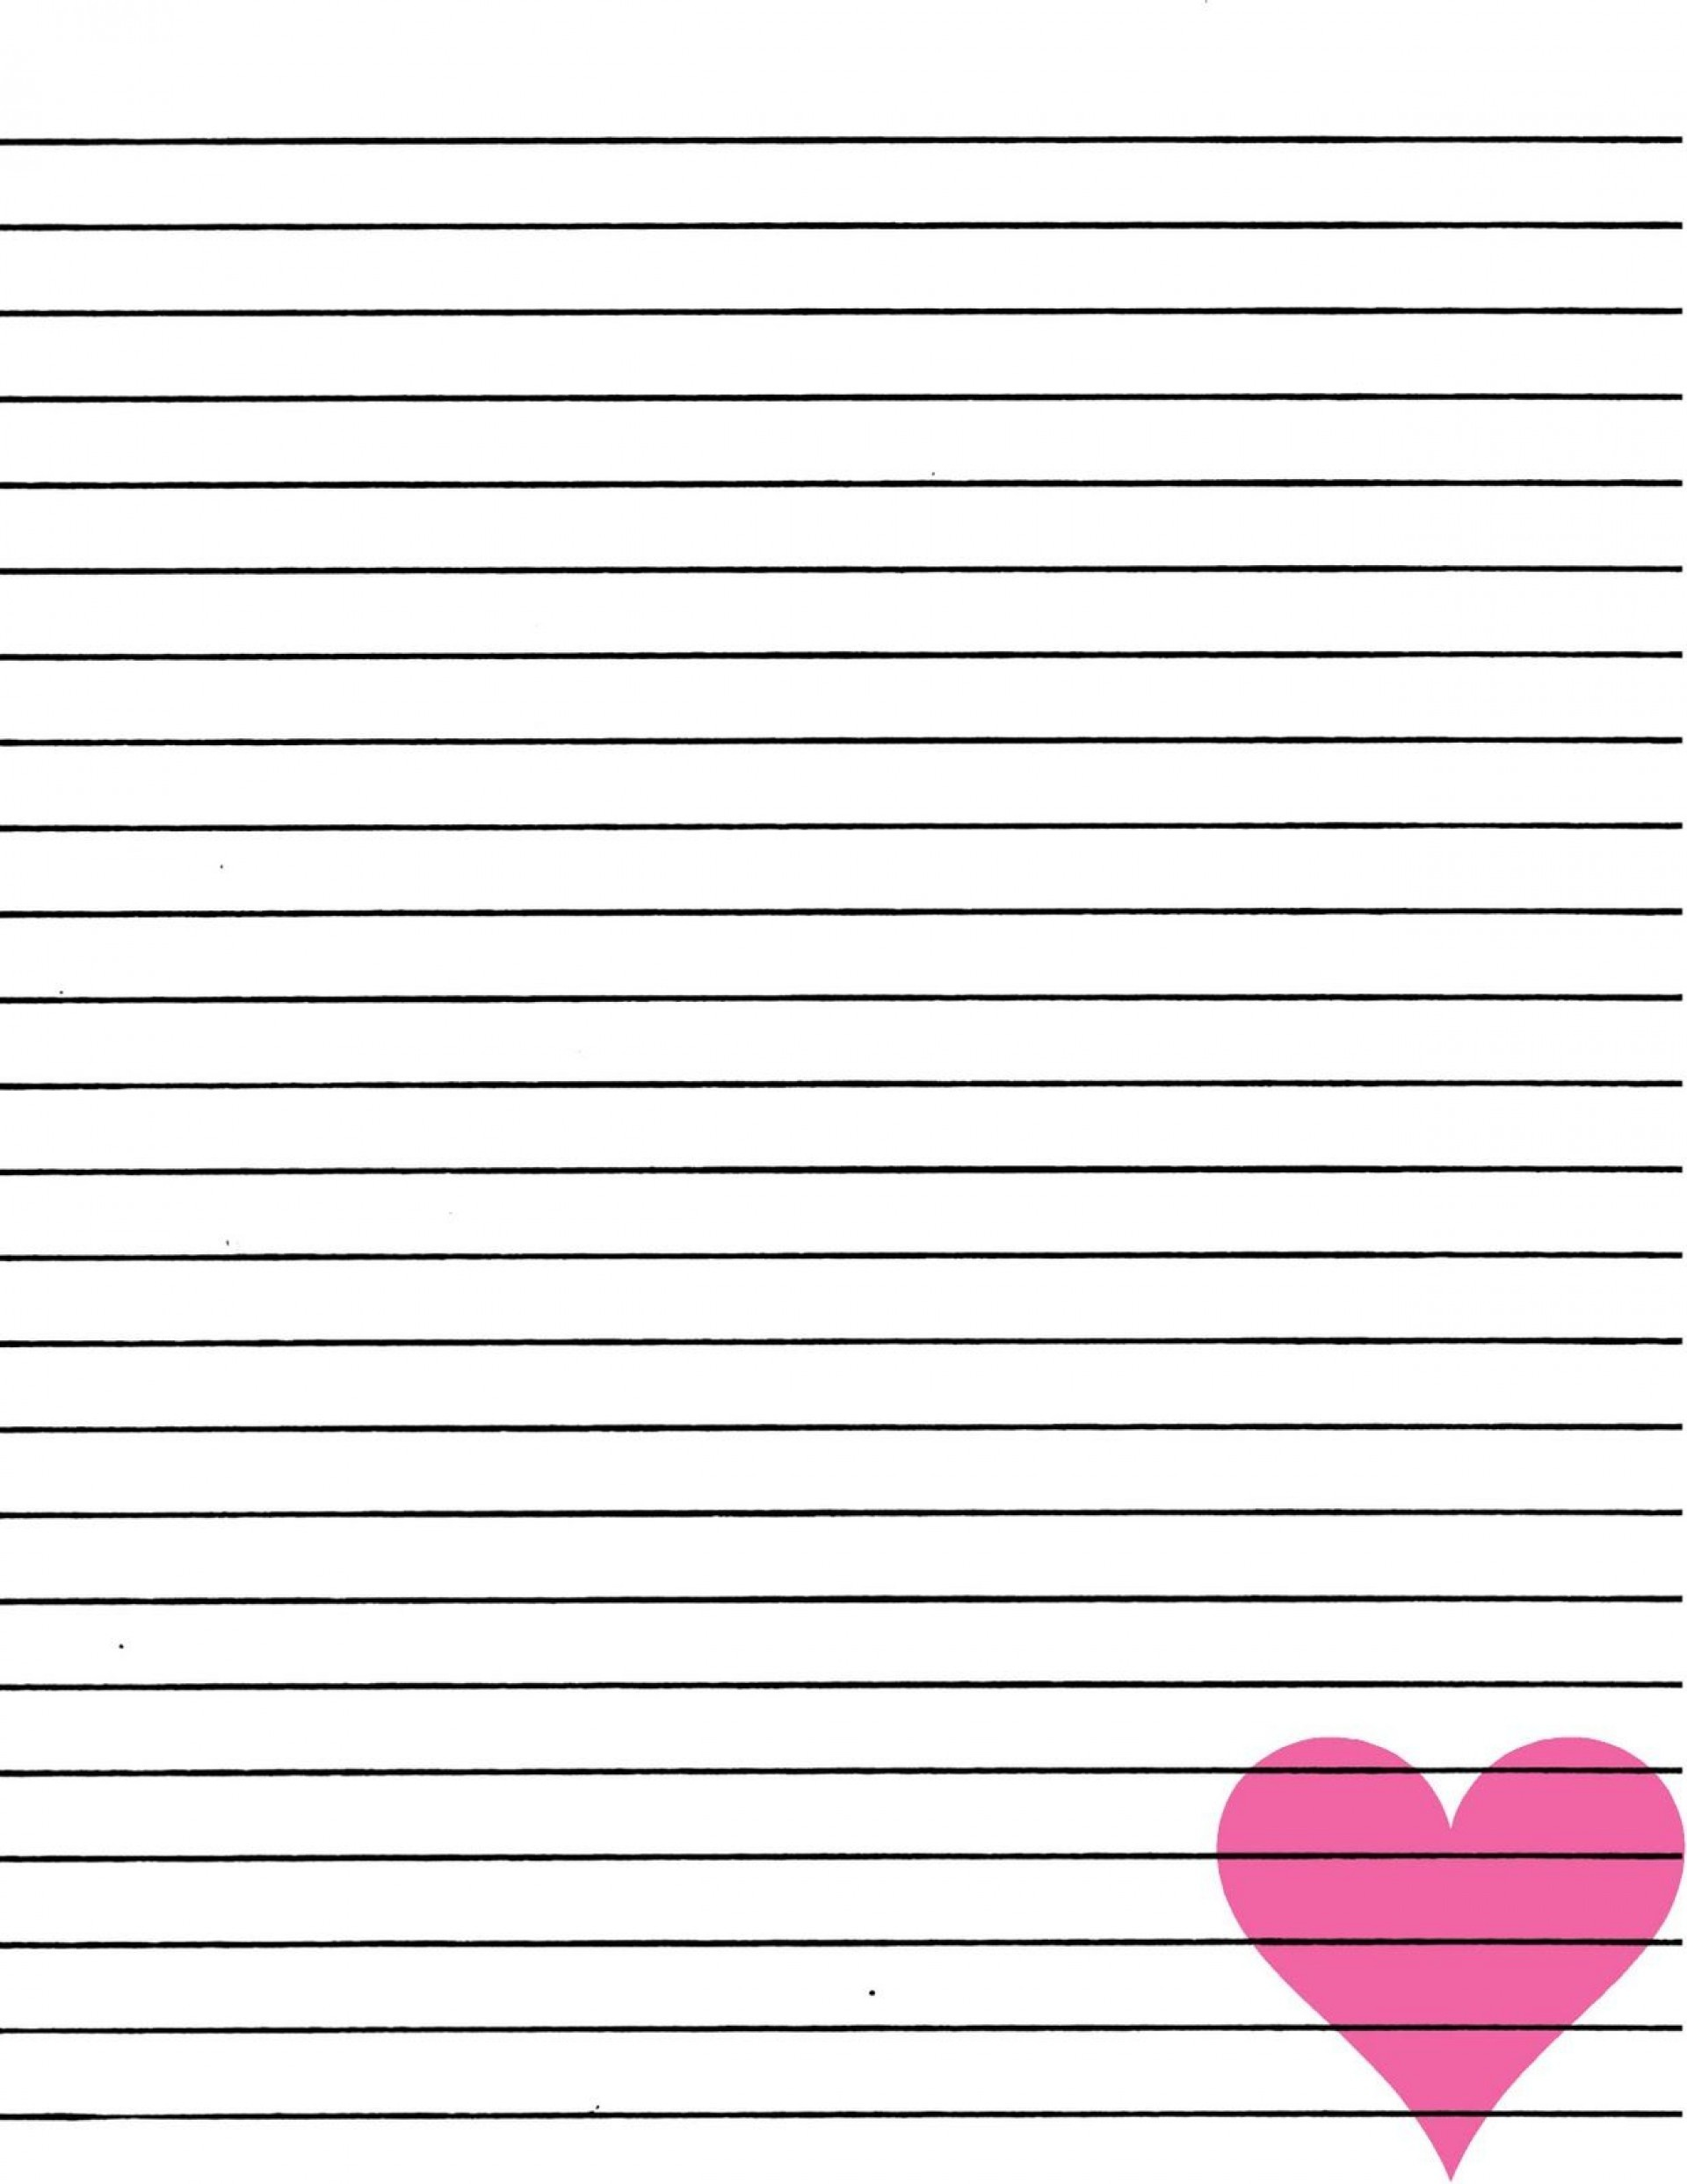 012 Lined Paper Template Pdf Ideas Papers Pics Writing For Kids - Free Printable Lined Stationery